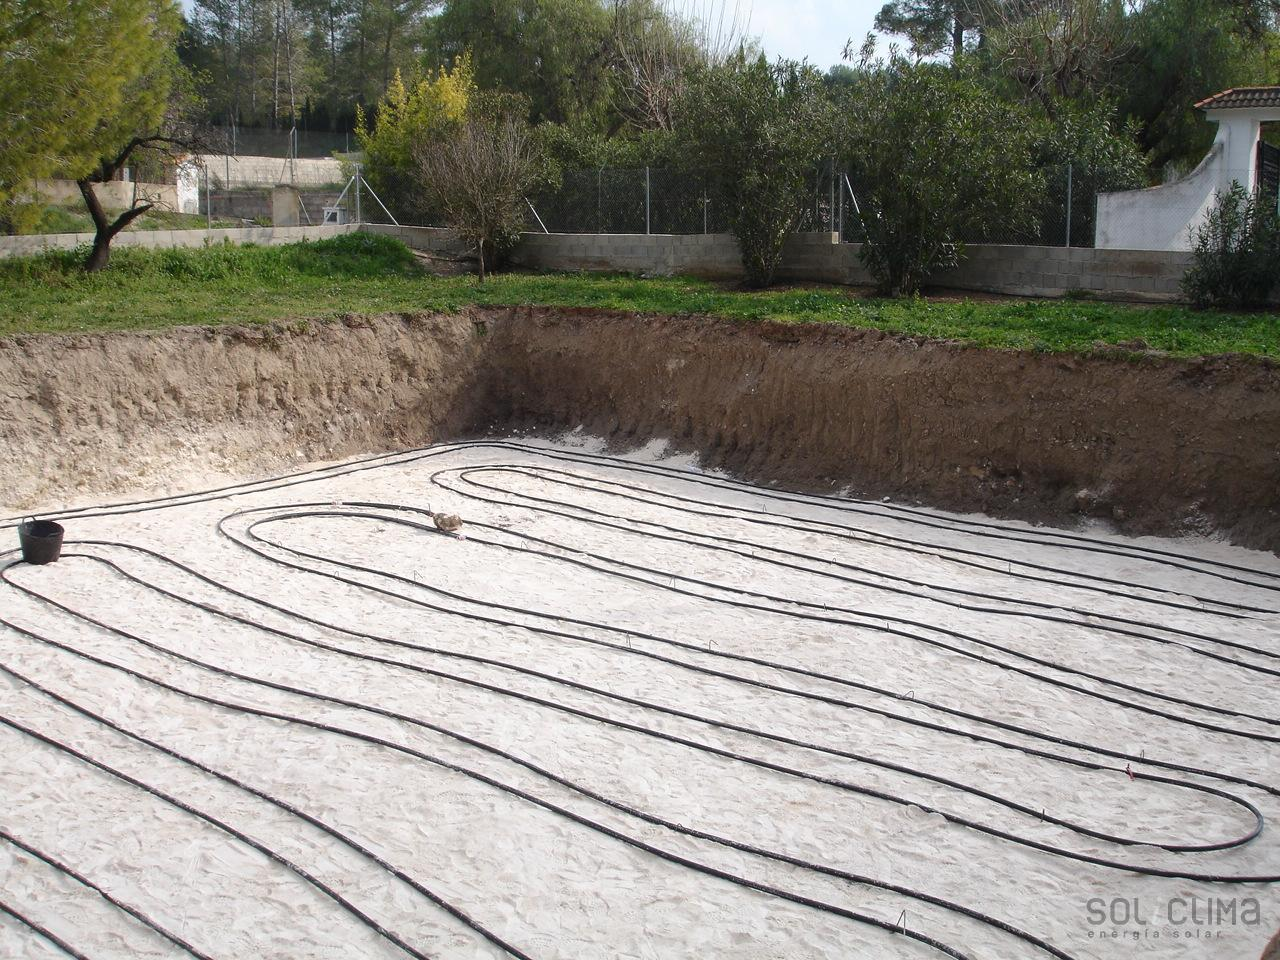 Geothermal heating facilities in los Angeles, California